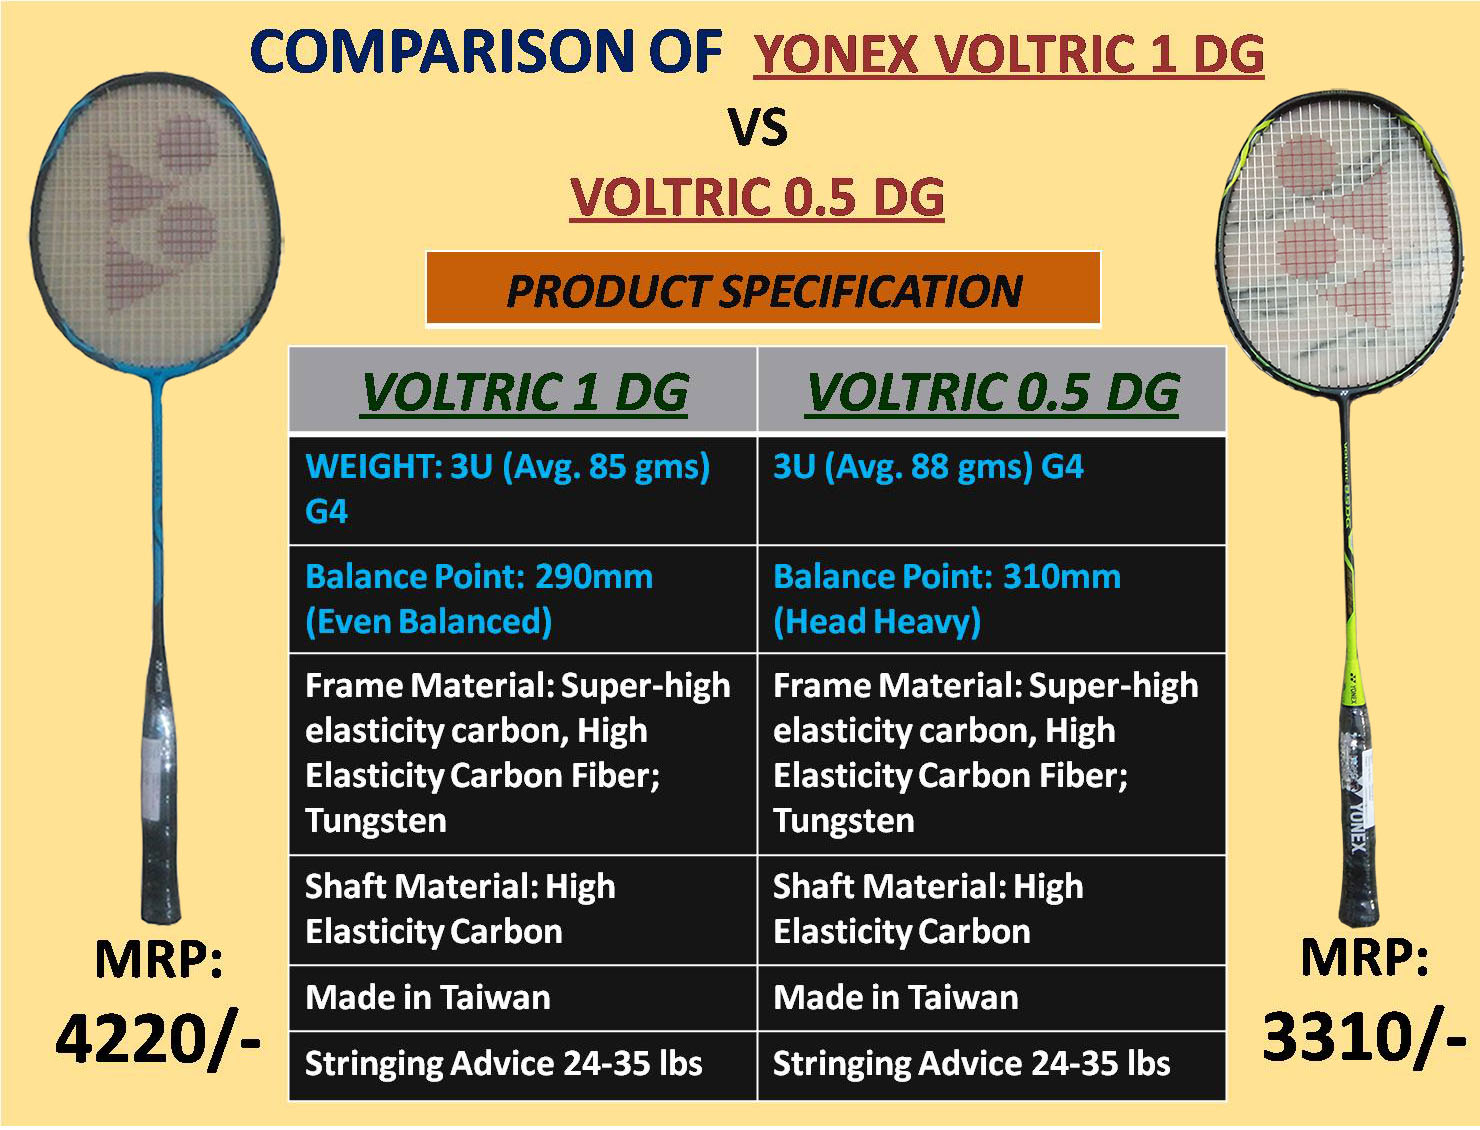 DIFFERENCES OF VOLTRIC 1DG VS VOLTRIC 05 DG